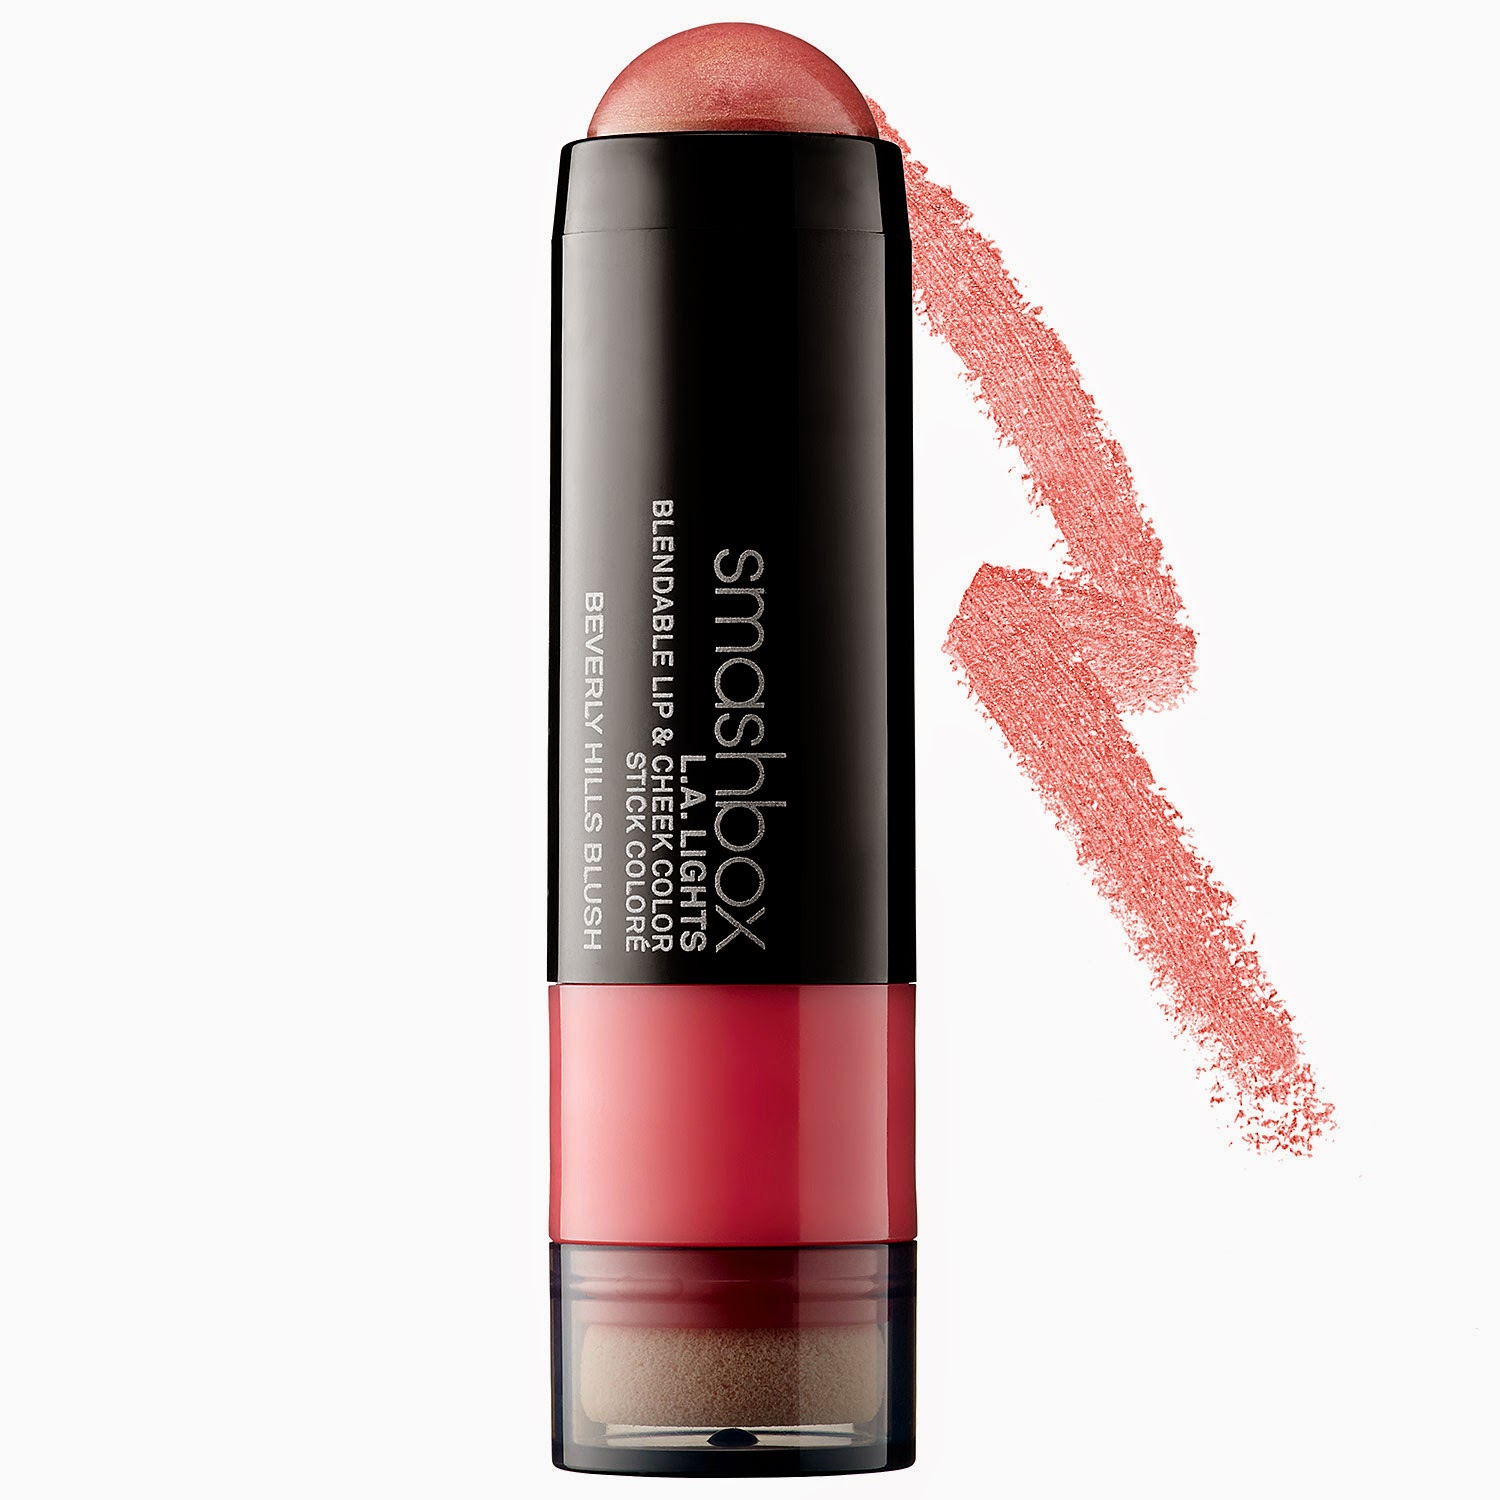 Smashbox: L.A. Lights Blendable Lip & Cheek Color